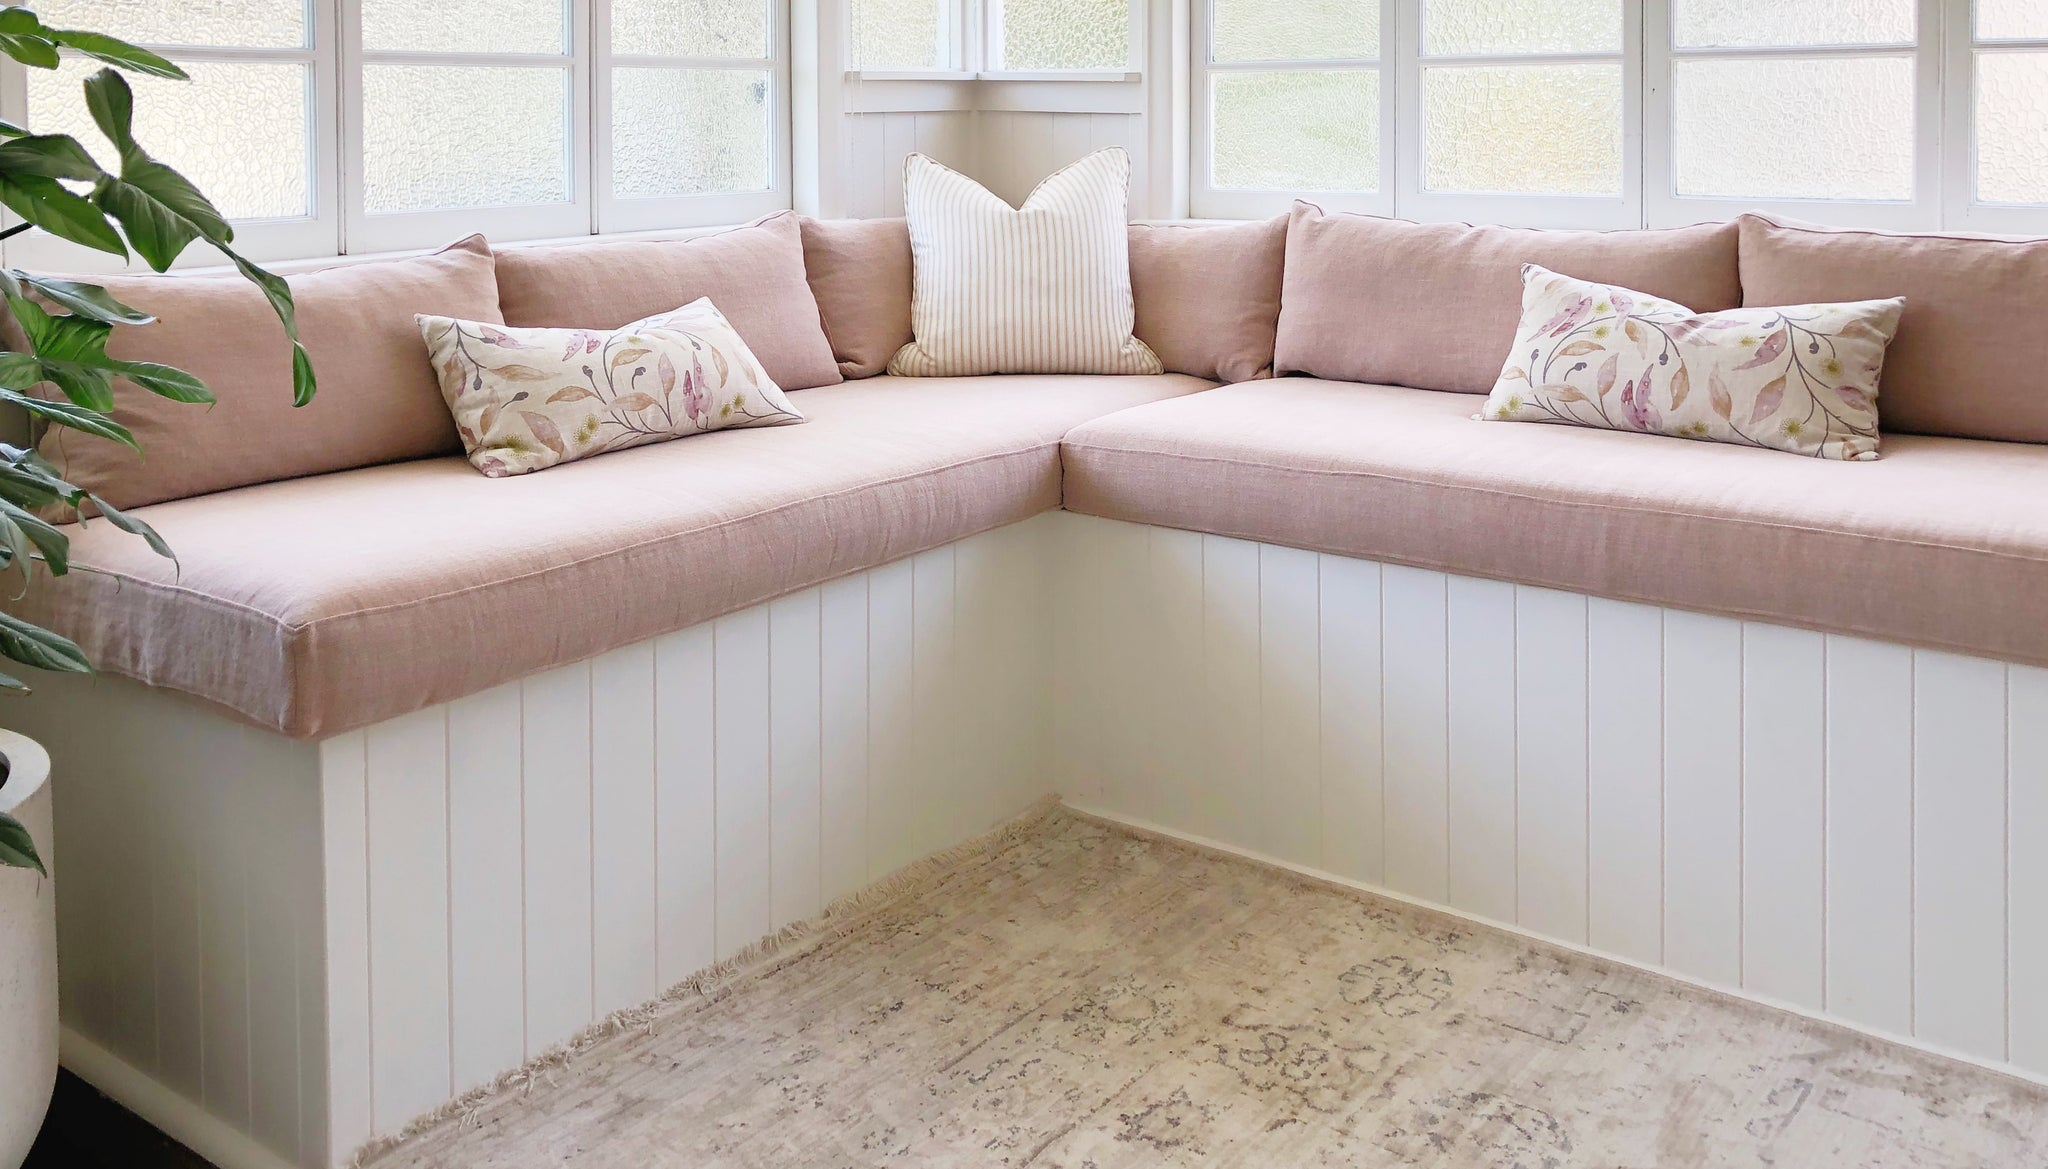 Squarefox_BenchSeatCushions_WindowSeatCushions_BuiltInSofa_palepinkLinen